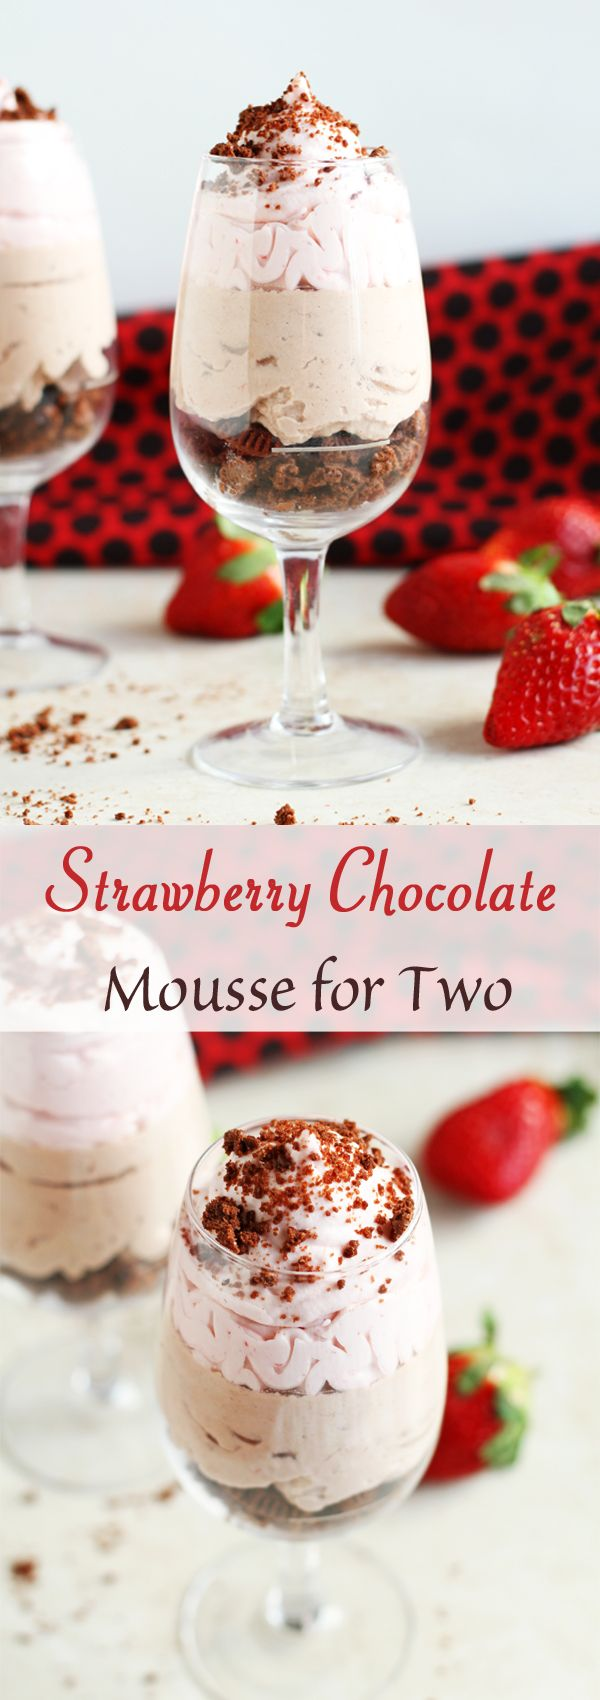 Chocolate Strawberry Mousse for Two - Simple Chocolate and Strawberry Mousse recipe is perfect for Valentine's Day. Served with chocolate cookies and two layers of whipped cream. A dessert for Two! by ilonaspassion.com I @ilonaspassion